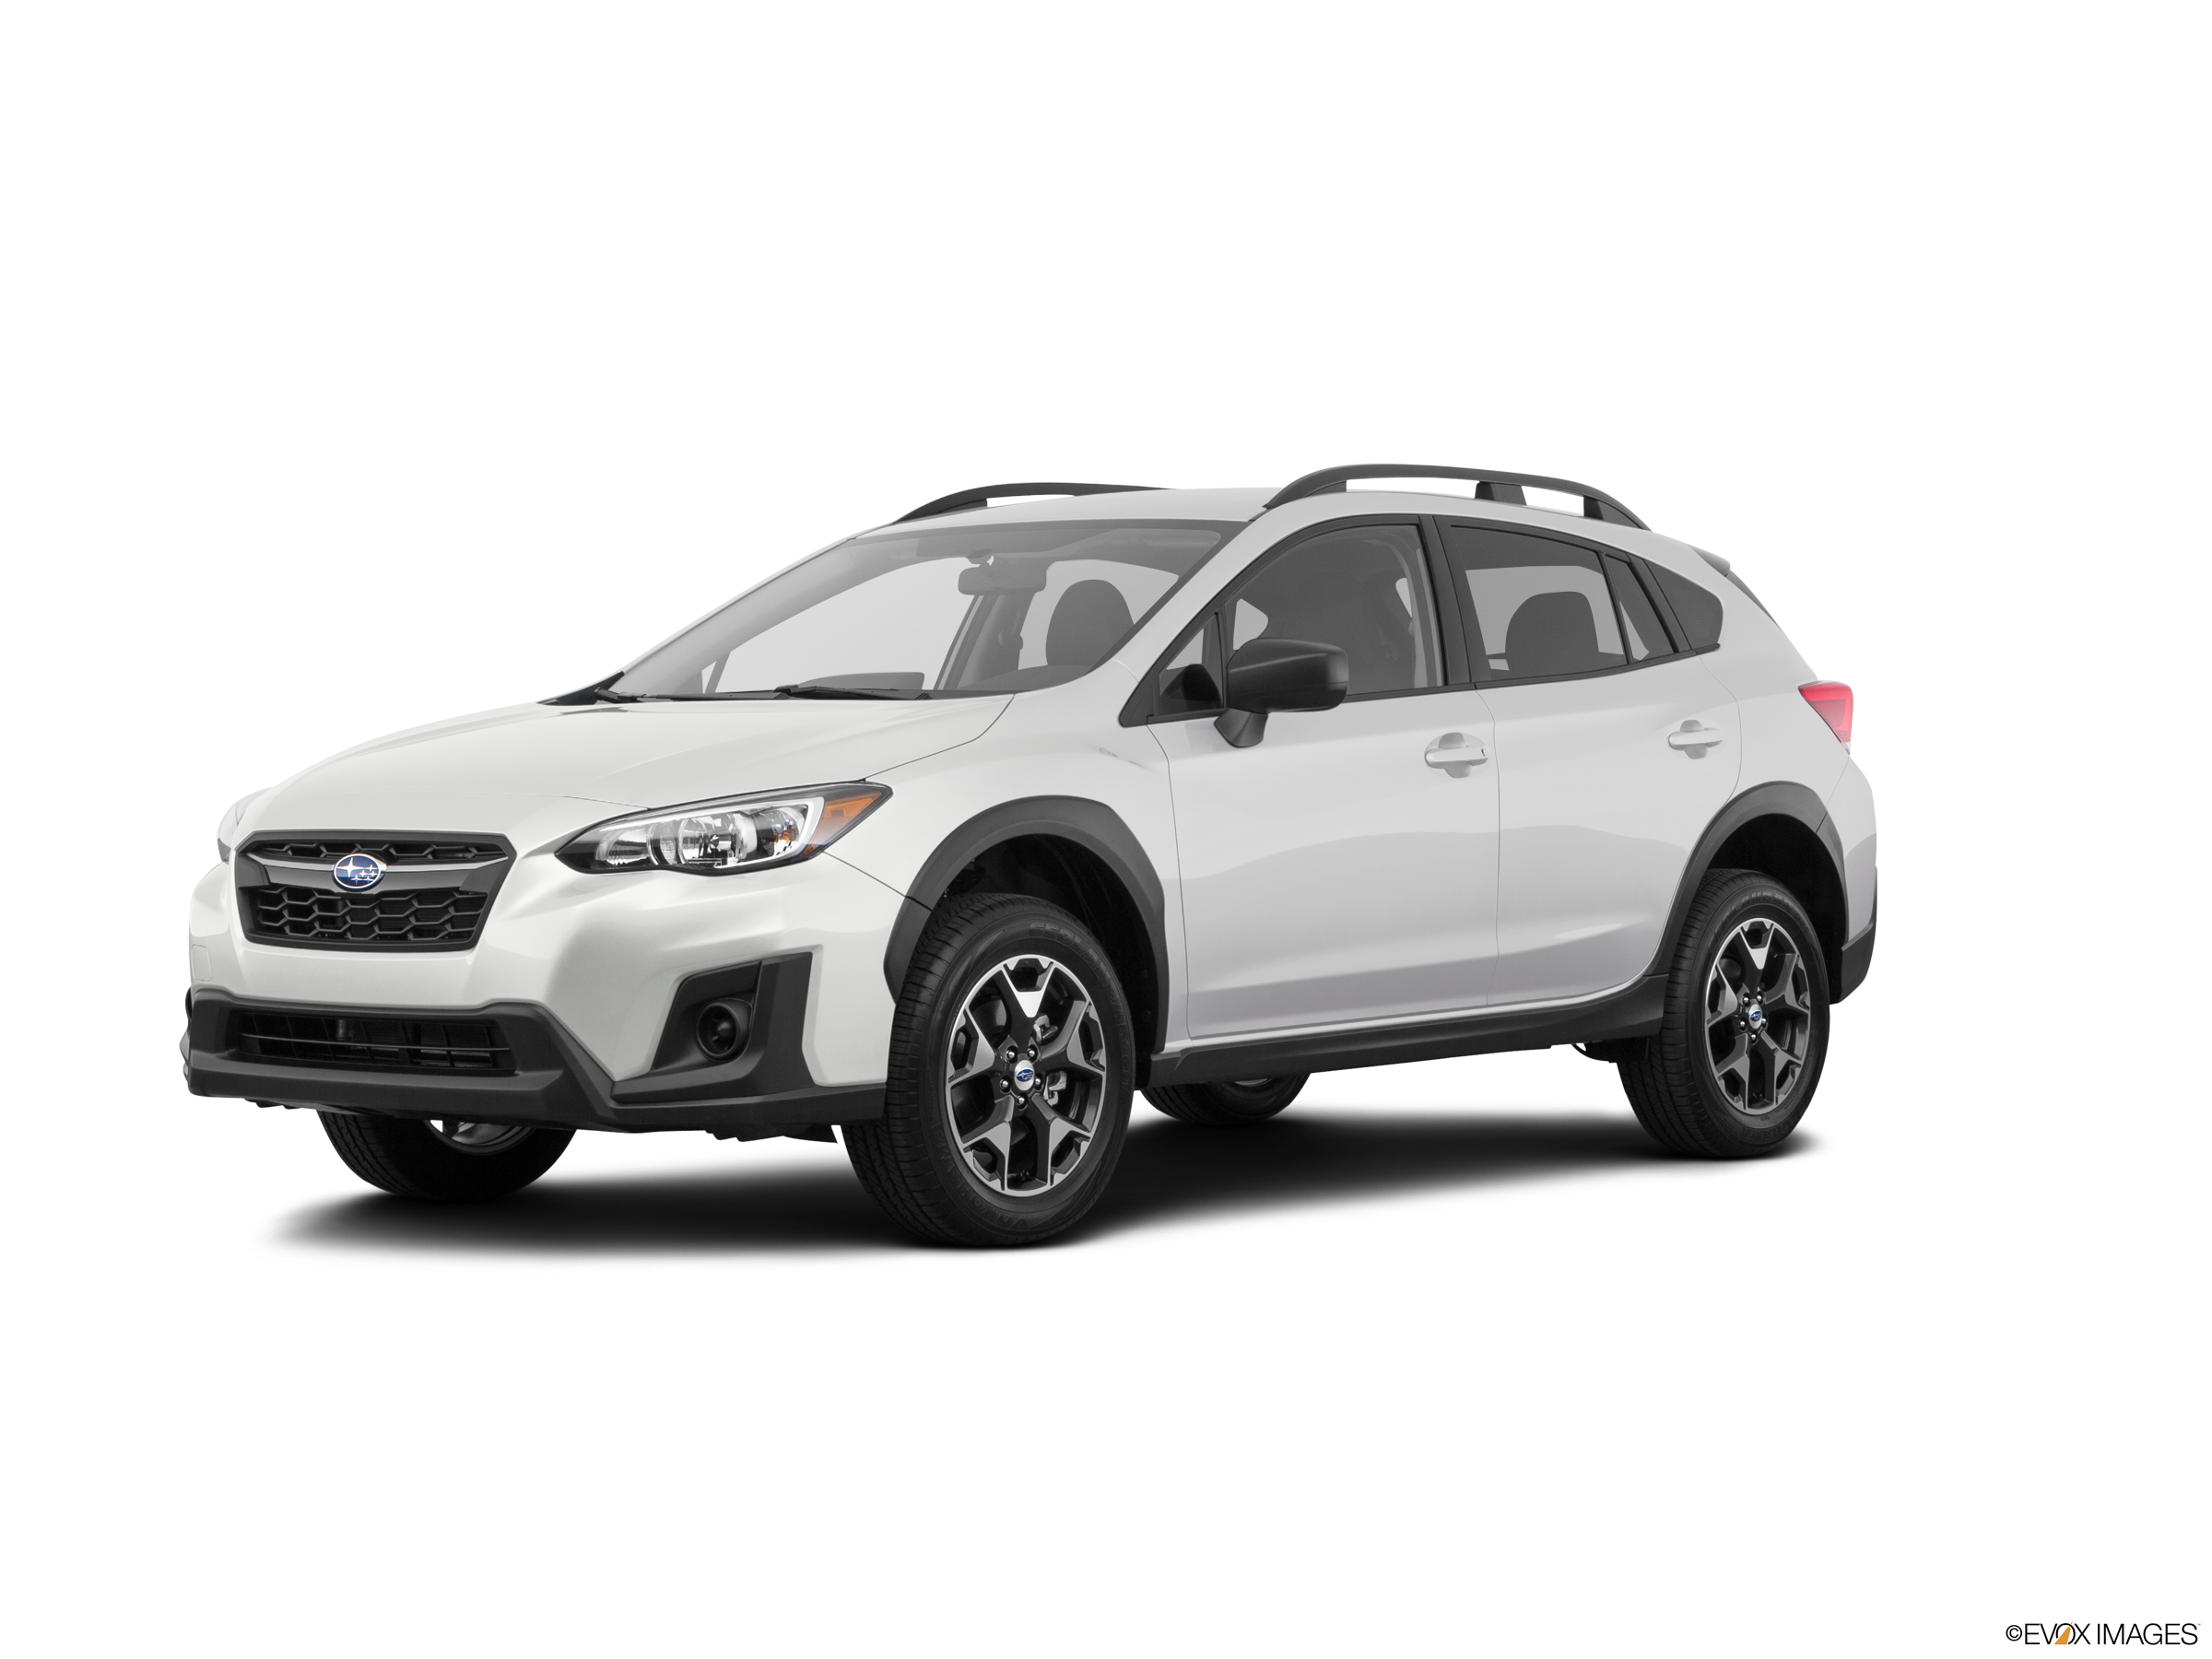 25 Best-Selling SUVs of 2018 - Subaru Crosstrek